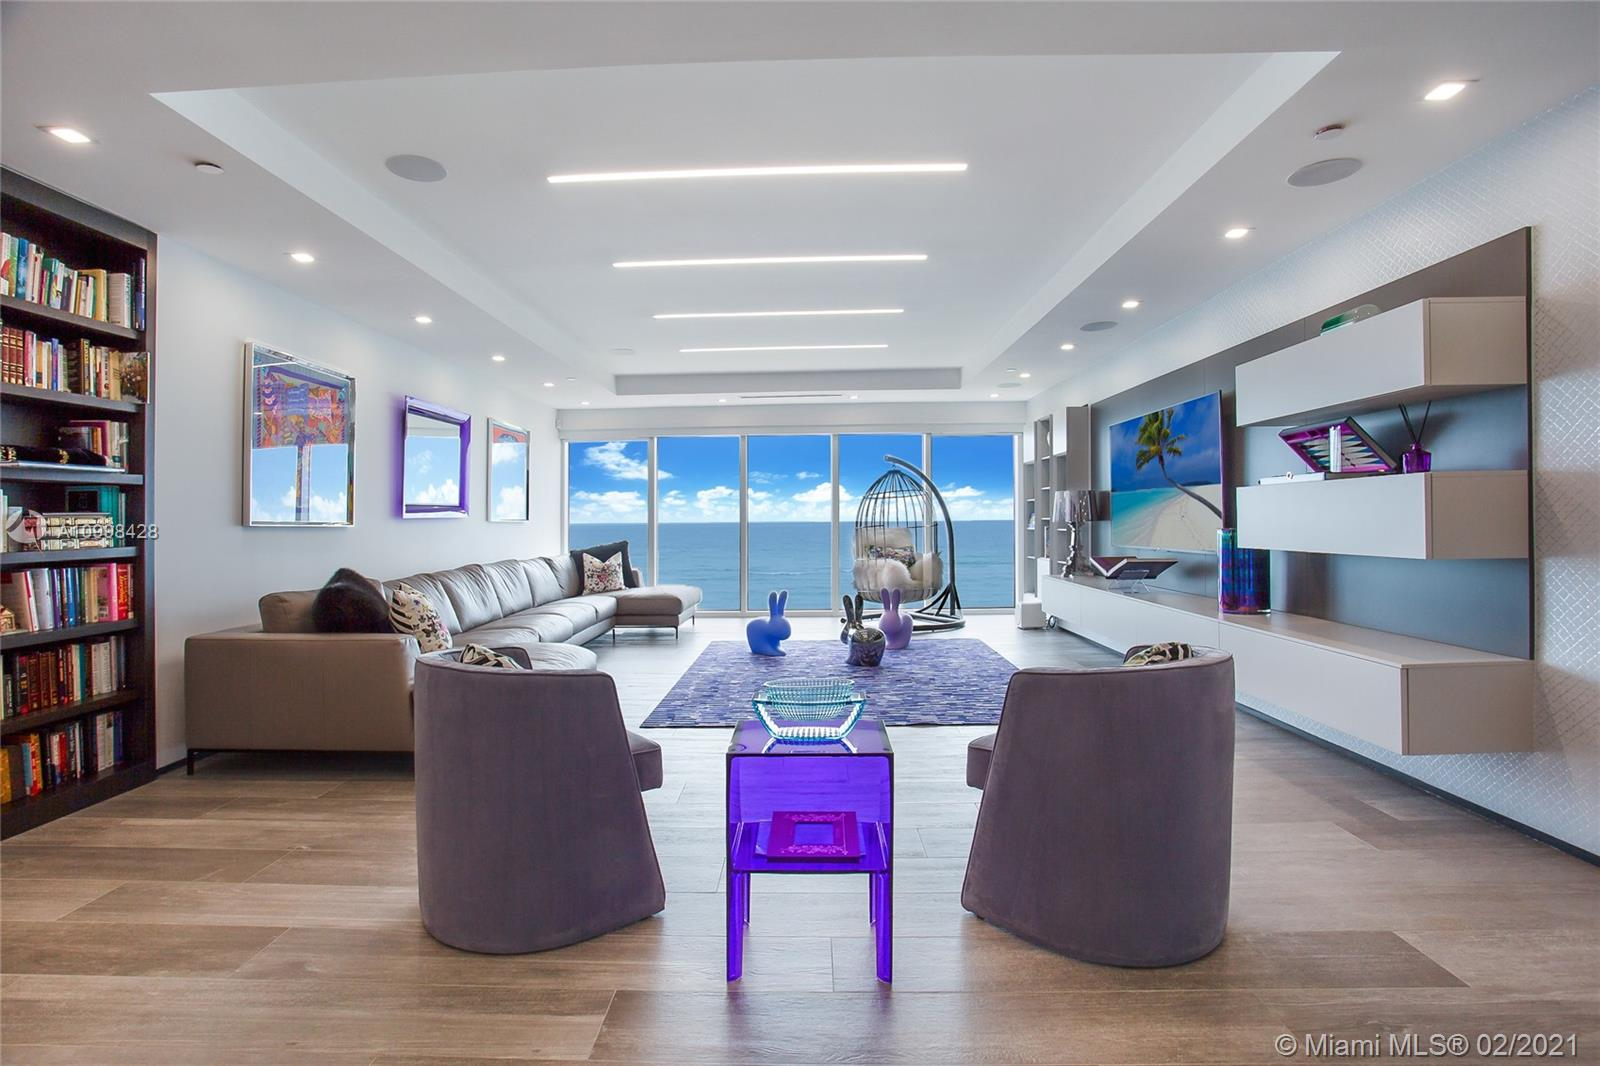 Located directly on the ocean, this beach pad is one of the most unique oceanfront properties in all of south Florida. Designed with impeccable taste and style, this 6 bedroom, 6.5 bathroom home is steps from your own private beach club. The Beach Club offers beach and pool service for all of its residence and state of the art gym/ spa facility as well. This beach oasis has its own private entrance and 2 self parking spaces to really give it the feel of a single family residence. Equipped with smart technology and top of line finishes this is the perfect pad to call home.